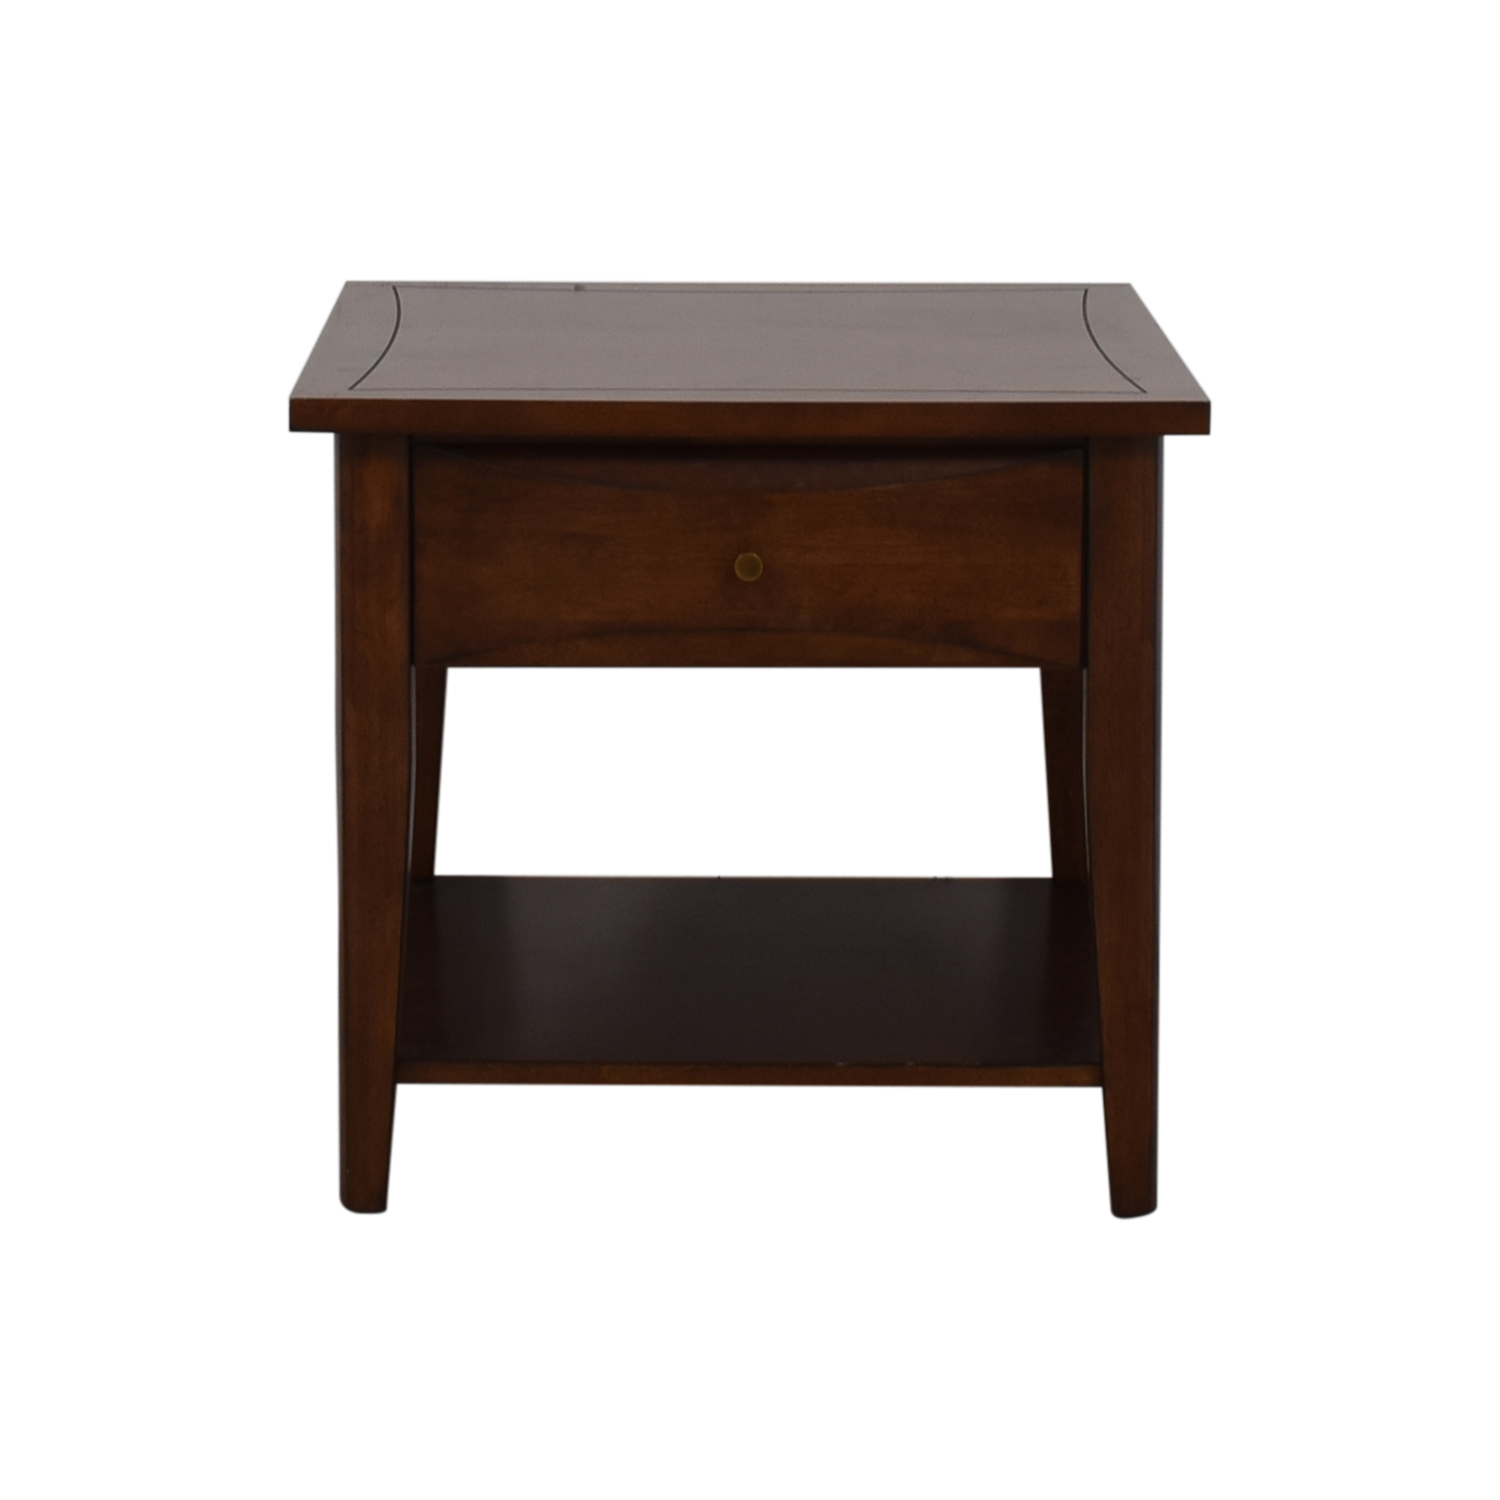 Coaster Fine Furniture Coaster Single Drawer Broad End Table brown